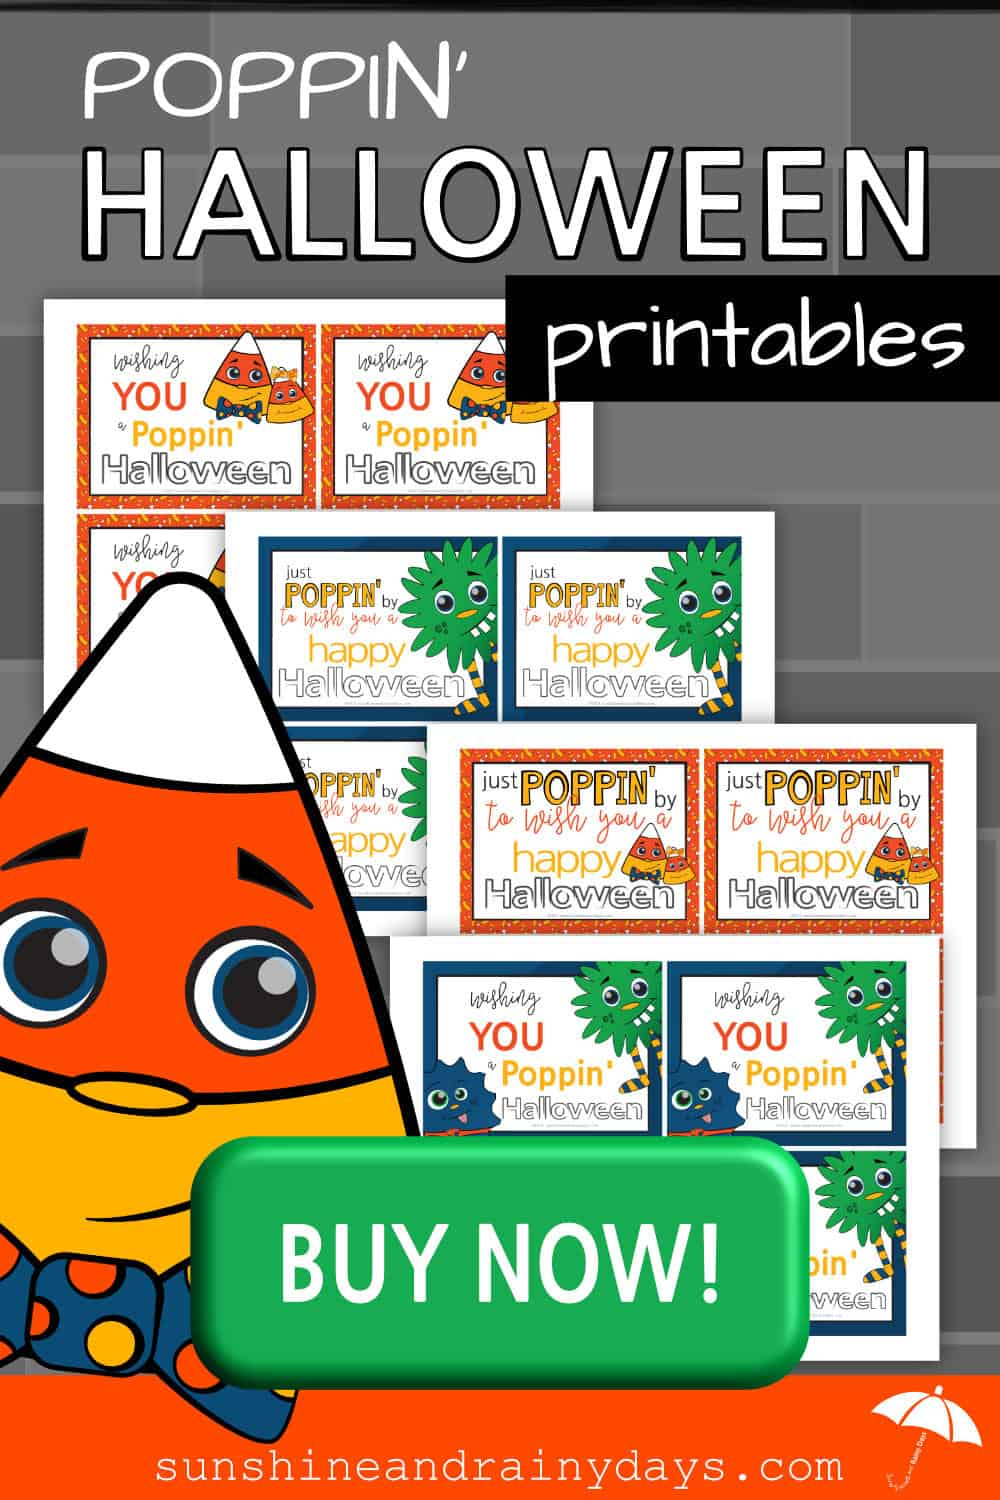 Have a Poppin' Halloween Printables